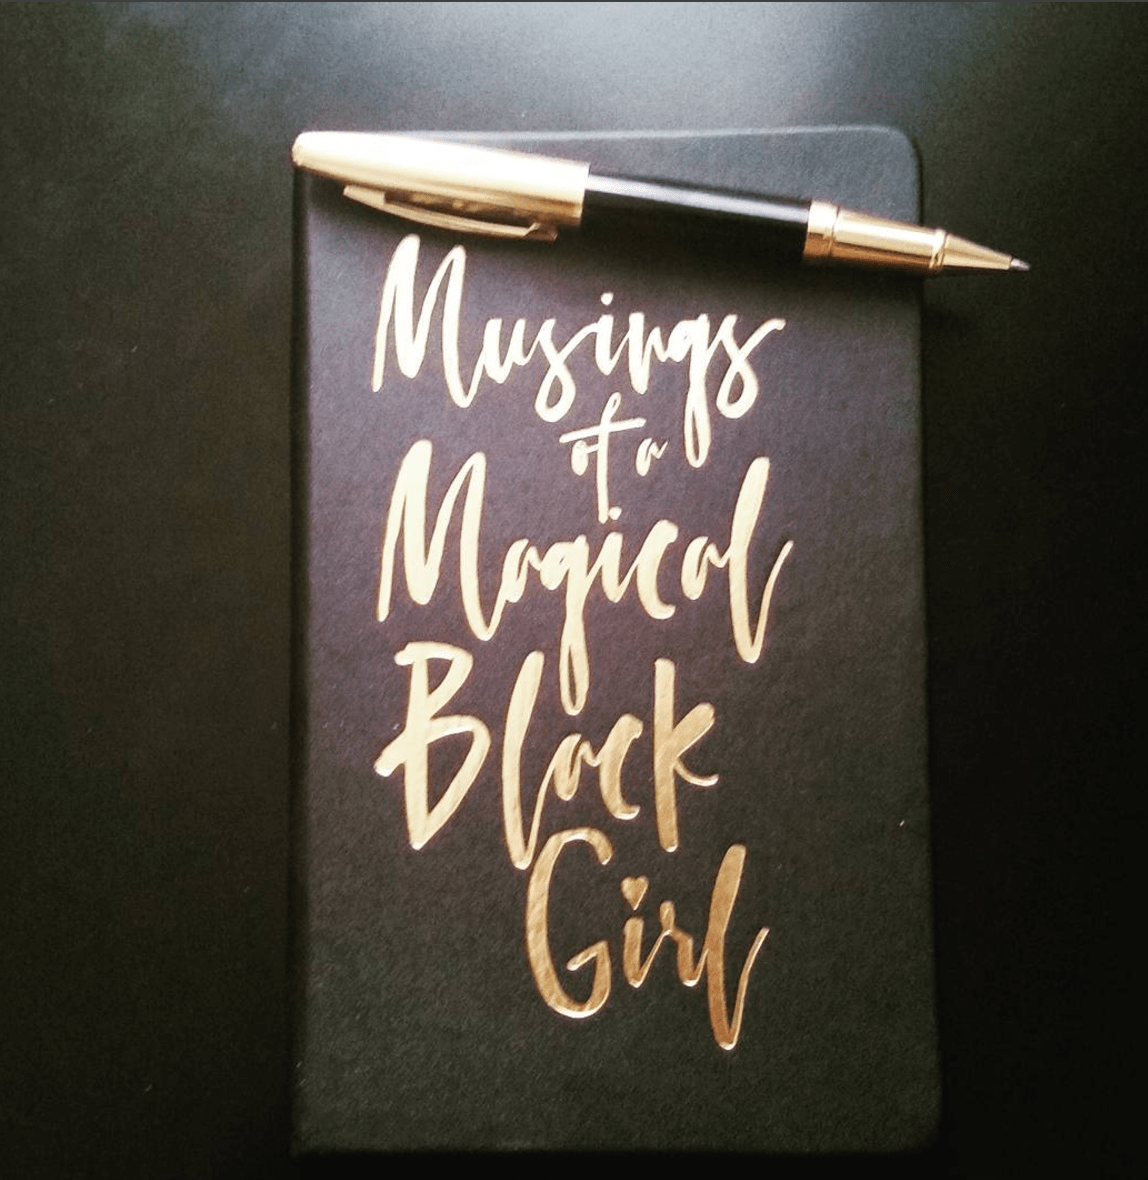 Musings of a Magical Black Girl Faux Leather Journal